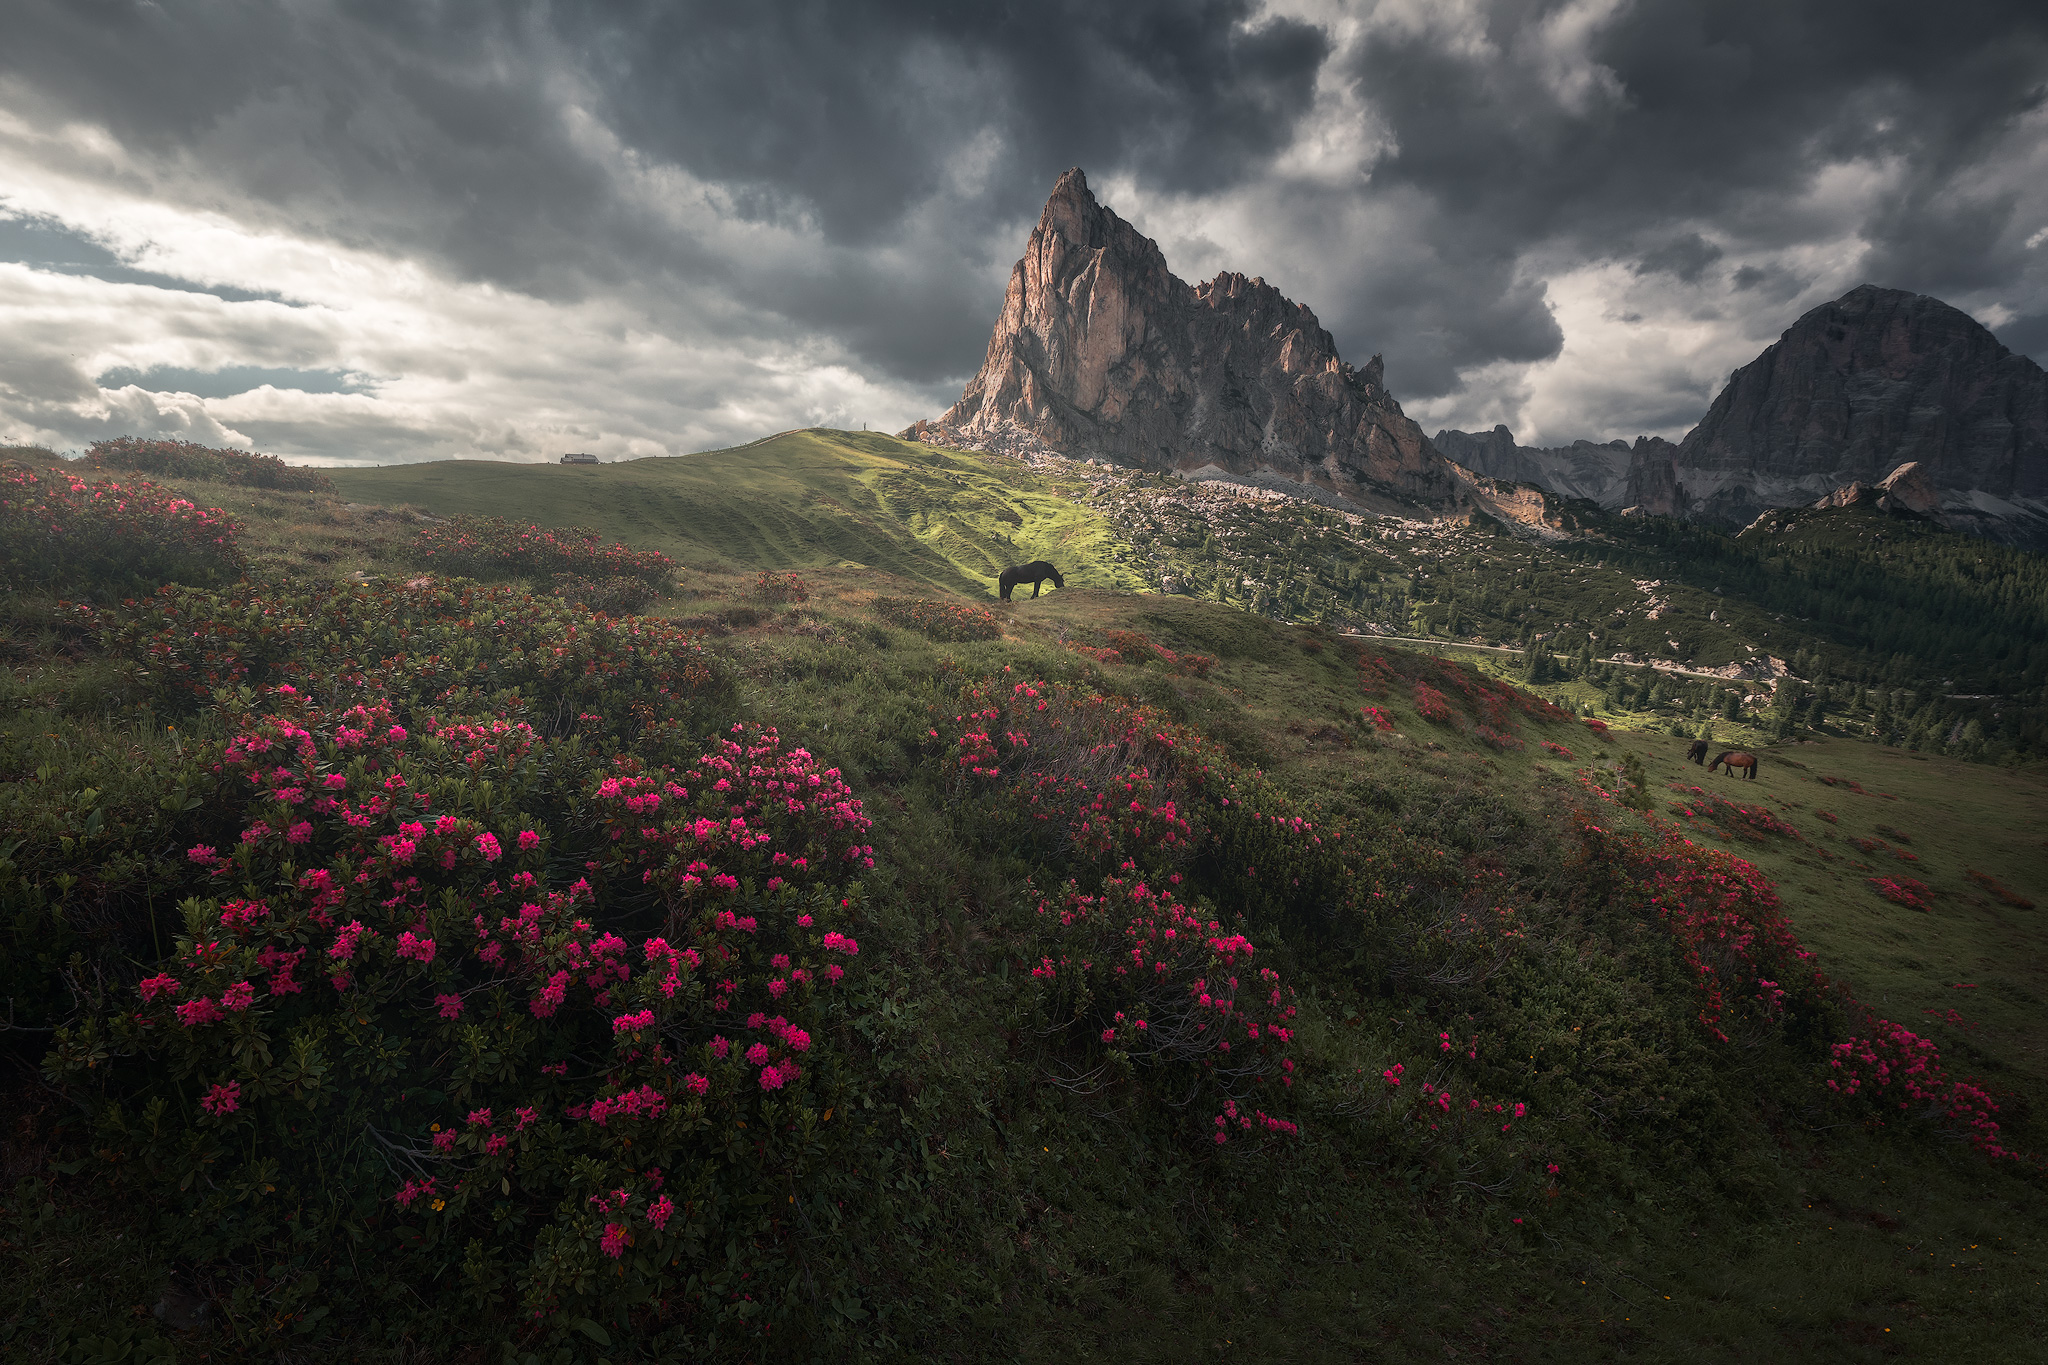 dolomites_workshop_15.jpg